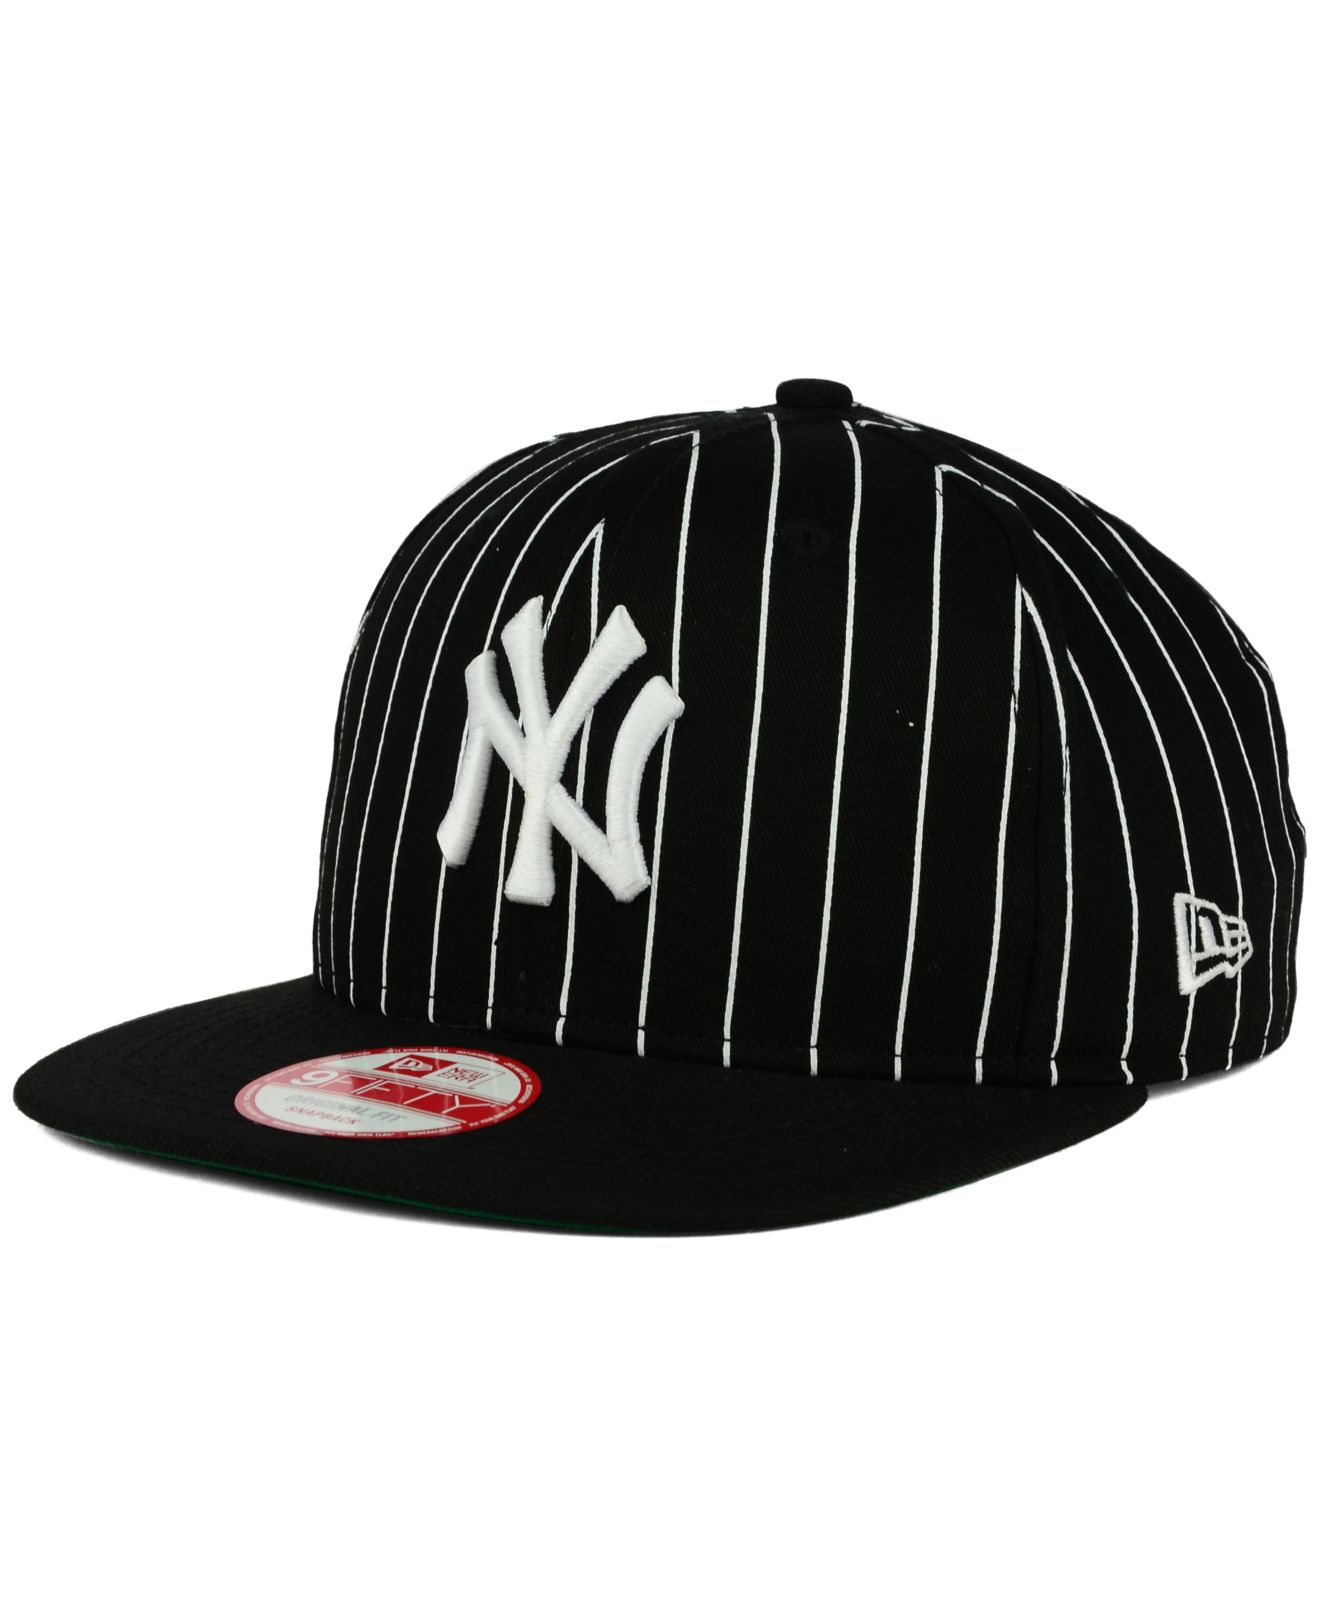 cbed39b88a995 KTZ New York Yankees Vintage Pinstripe 9fifty Snapback Cap in Black ...